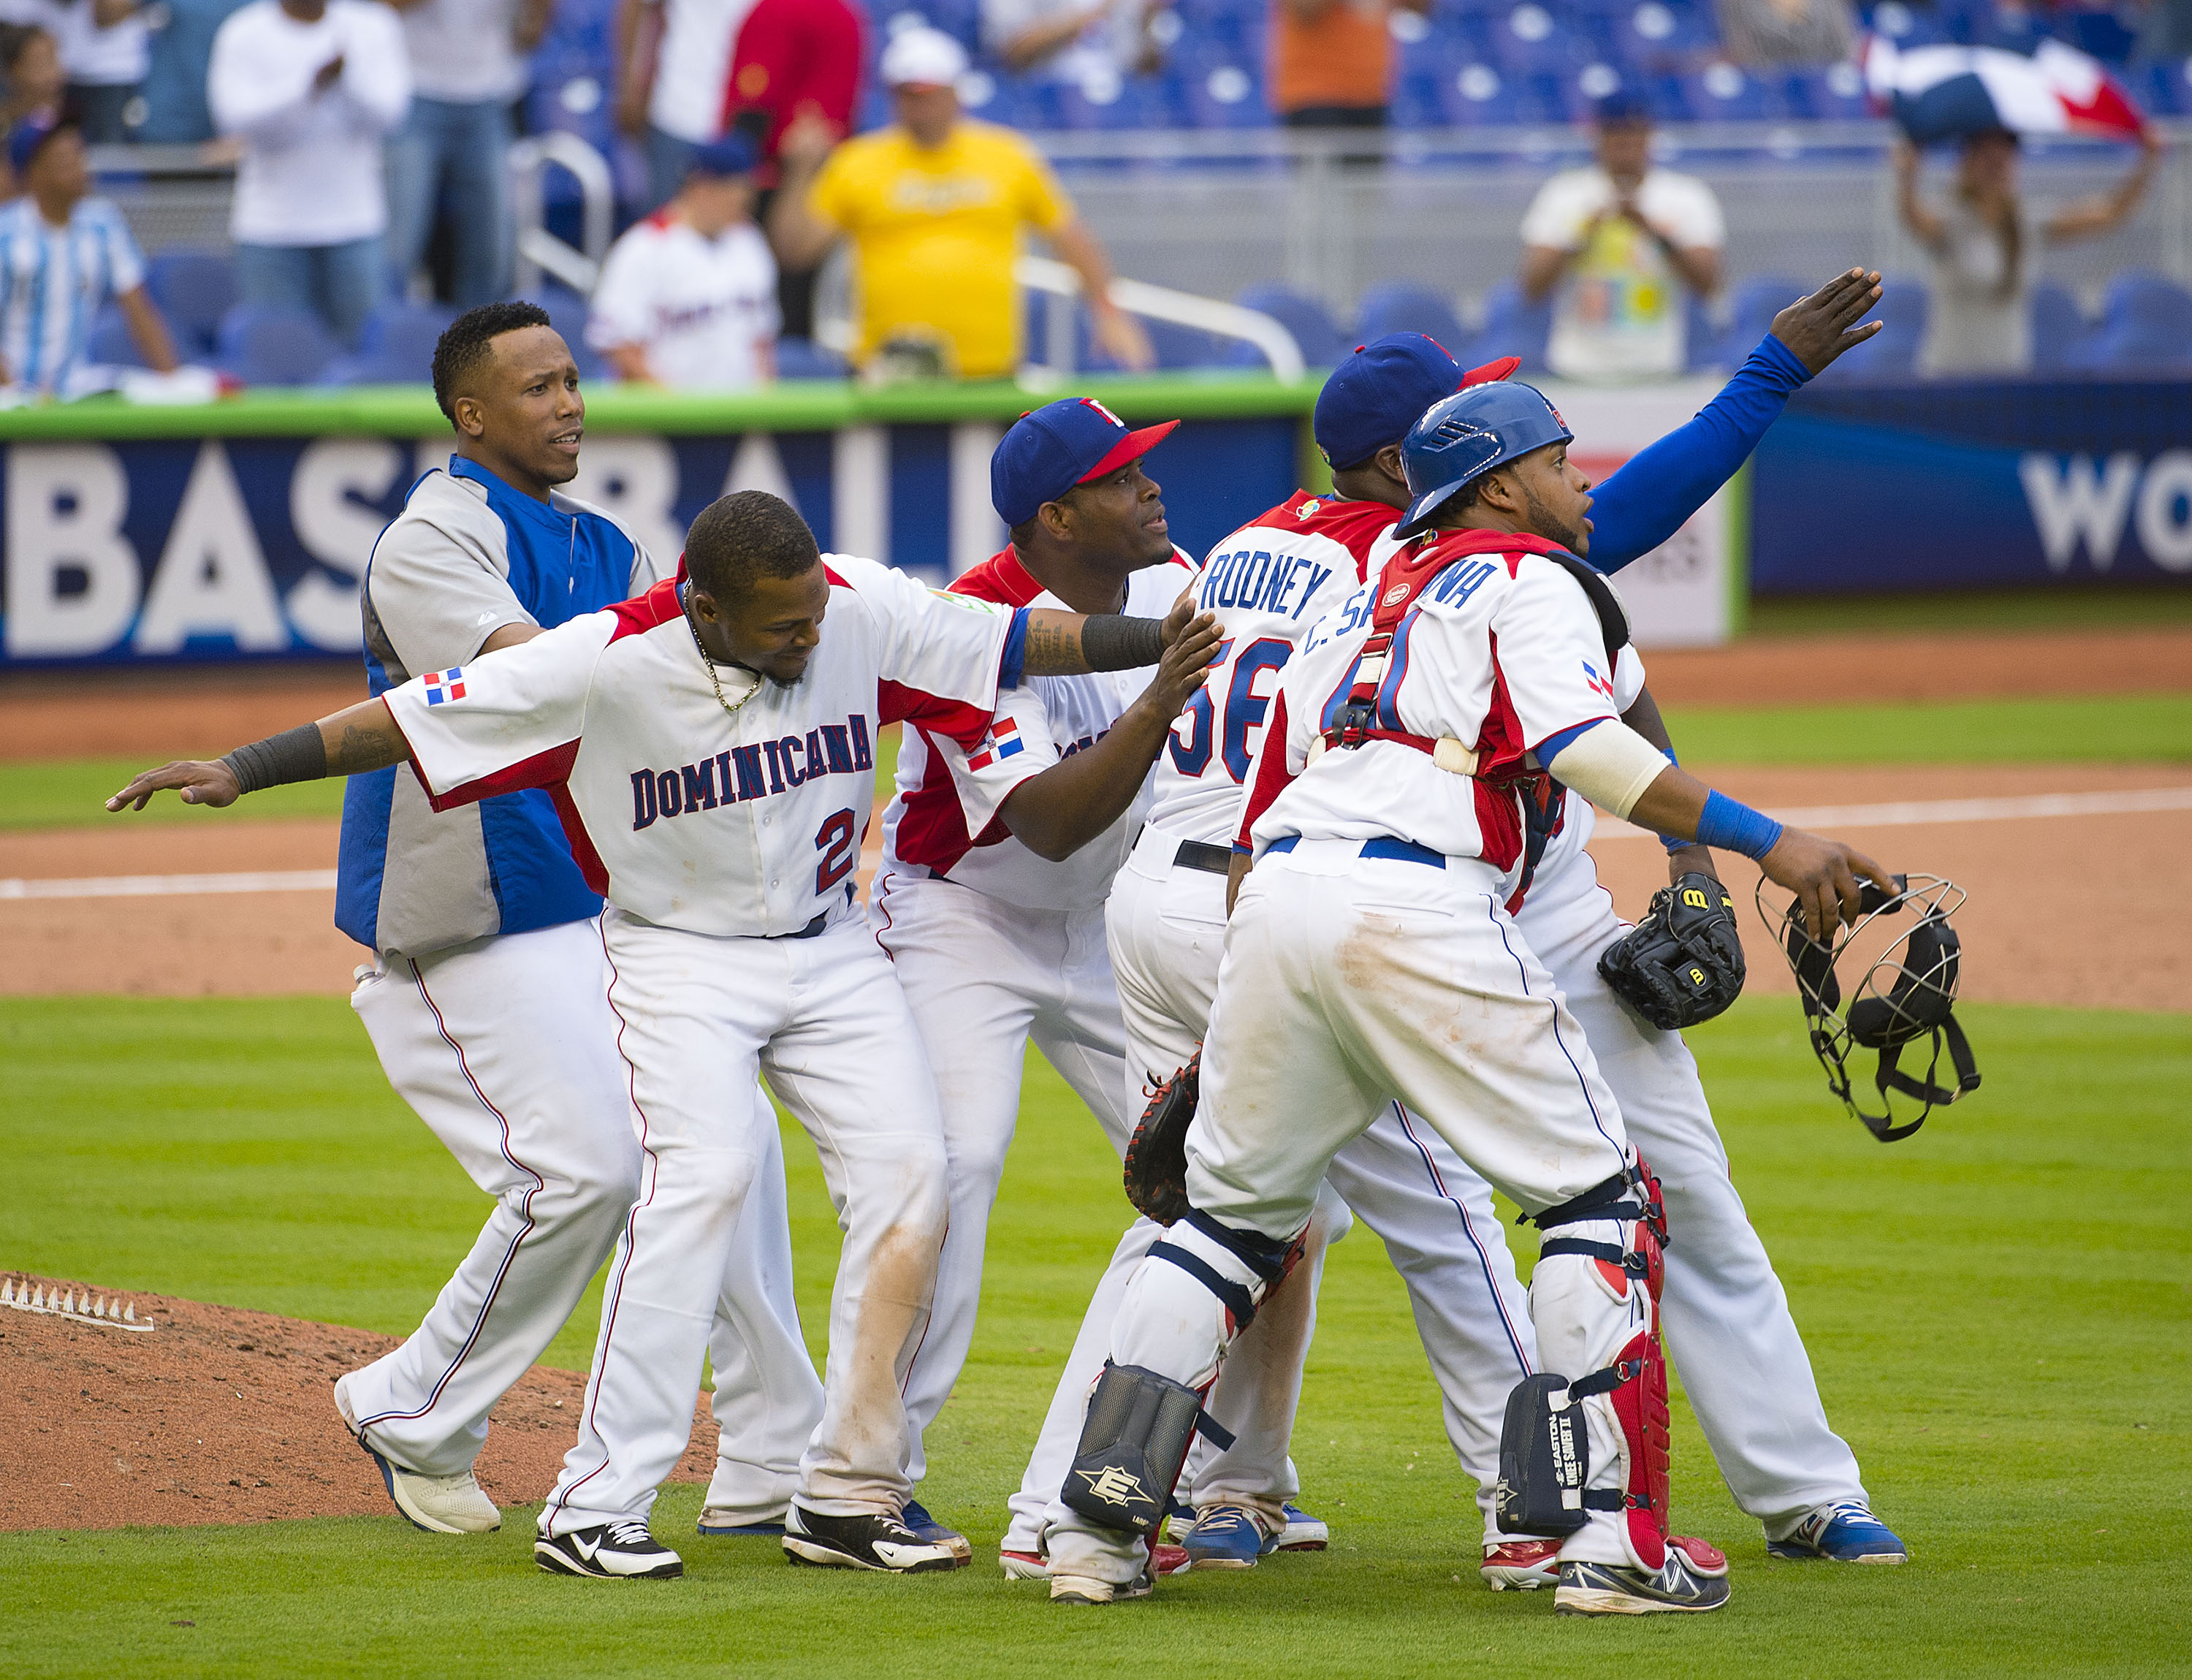 The Dominicans rallied from a 4-0 deficit to beat Team Italy in the WBC on Tuesday. (USA Today Sports)